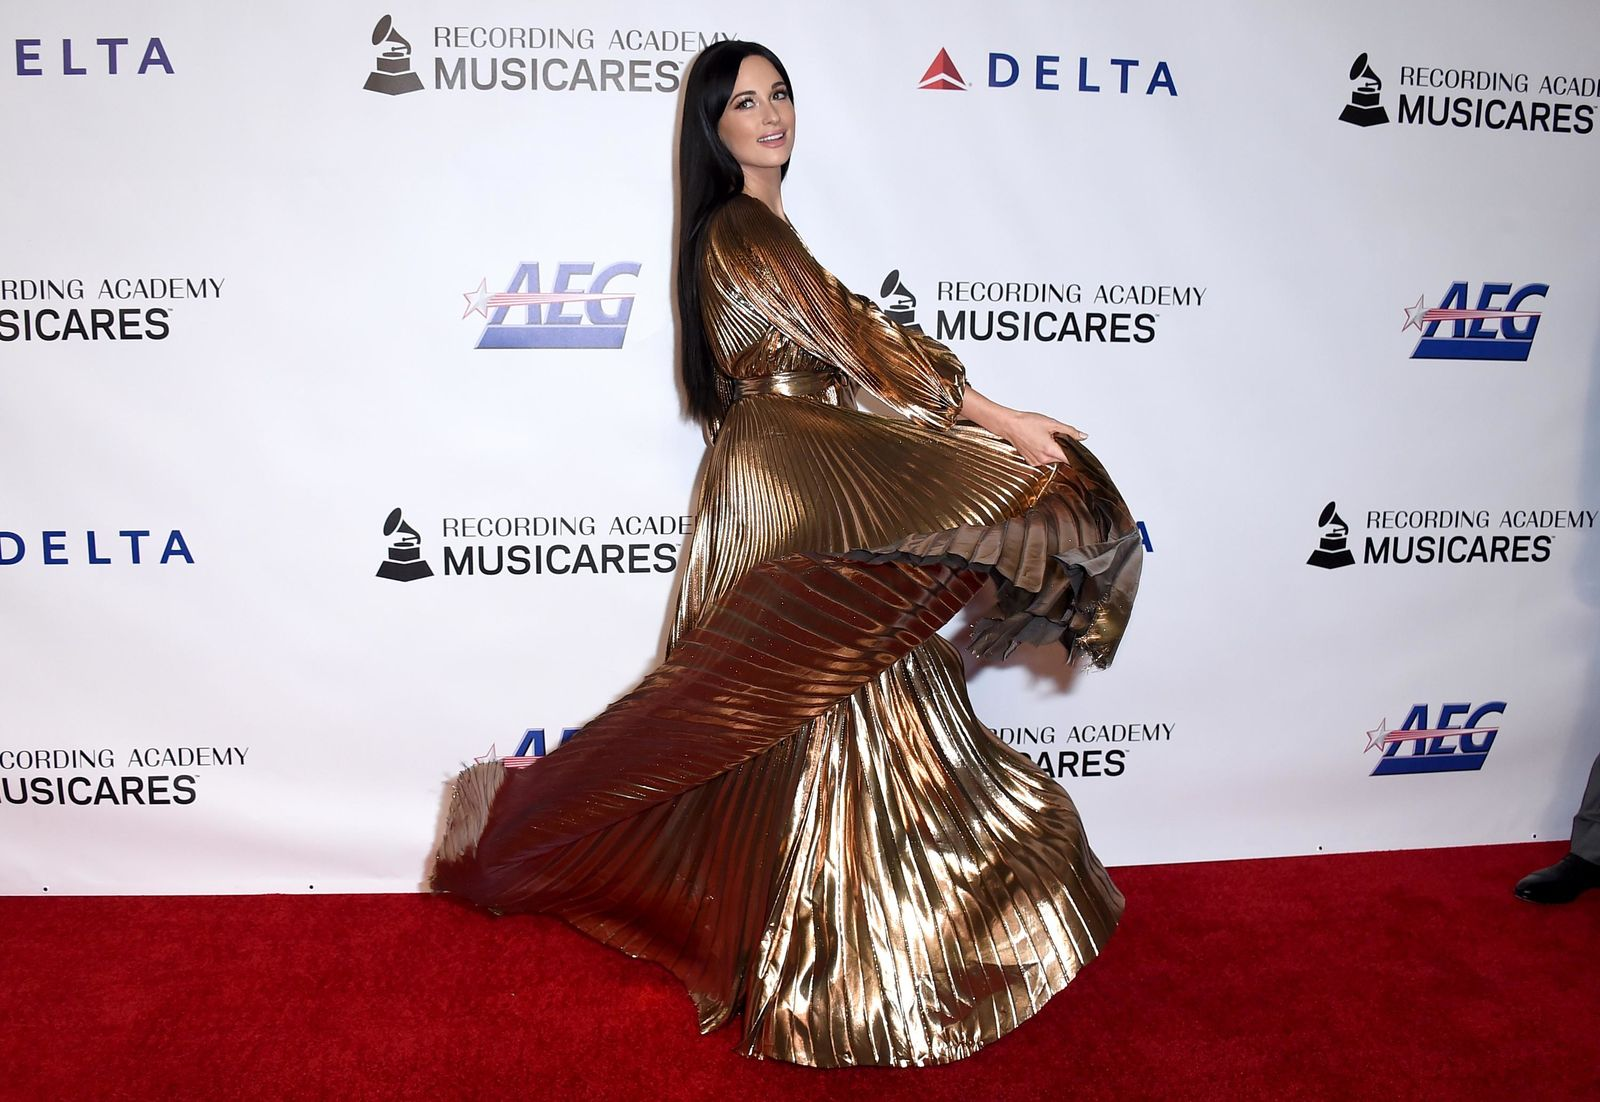 Kacey Musgraves arrives at MusiCares Person of the Year honoring Dolly Parton on Friday, Feb. 8, 2018, at the Los Angeles Convention Center. (Photo by Jordan Strauss/Invision/AP)